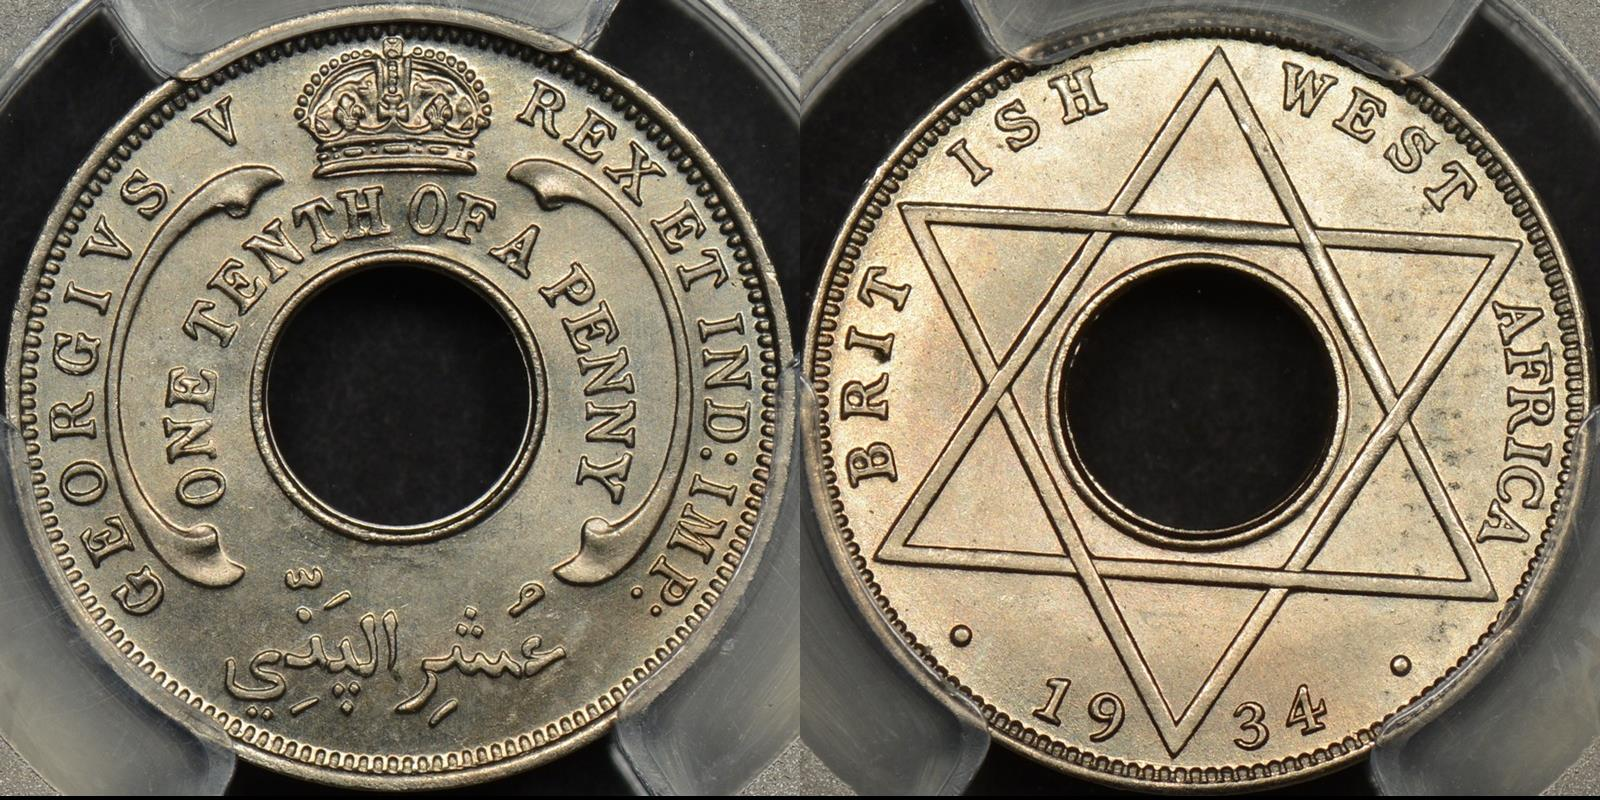 British west africa 1934 one tenth penny 1 10 d km 7 PCGS MS65 GEM Uncirculated